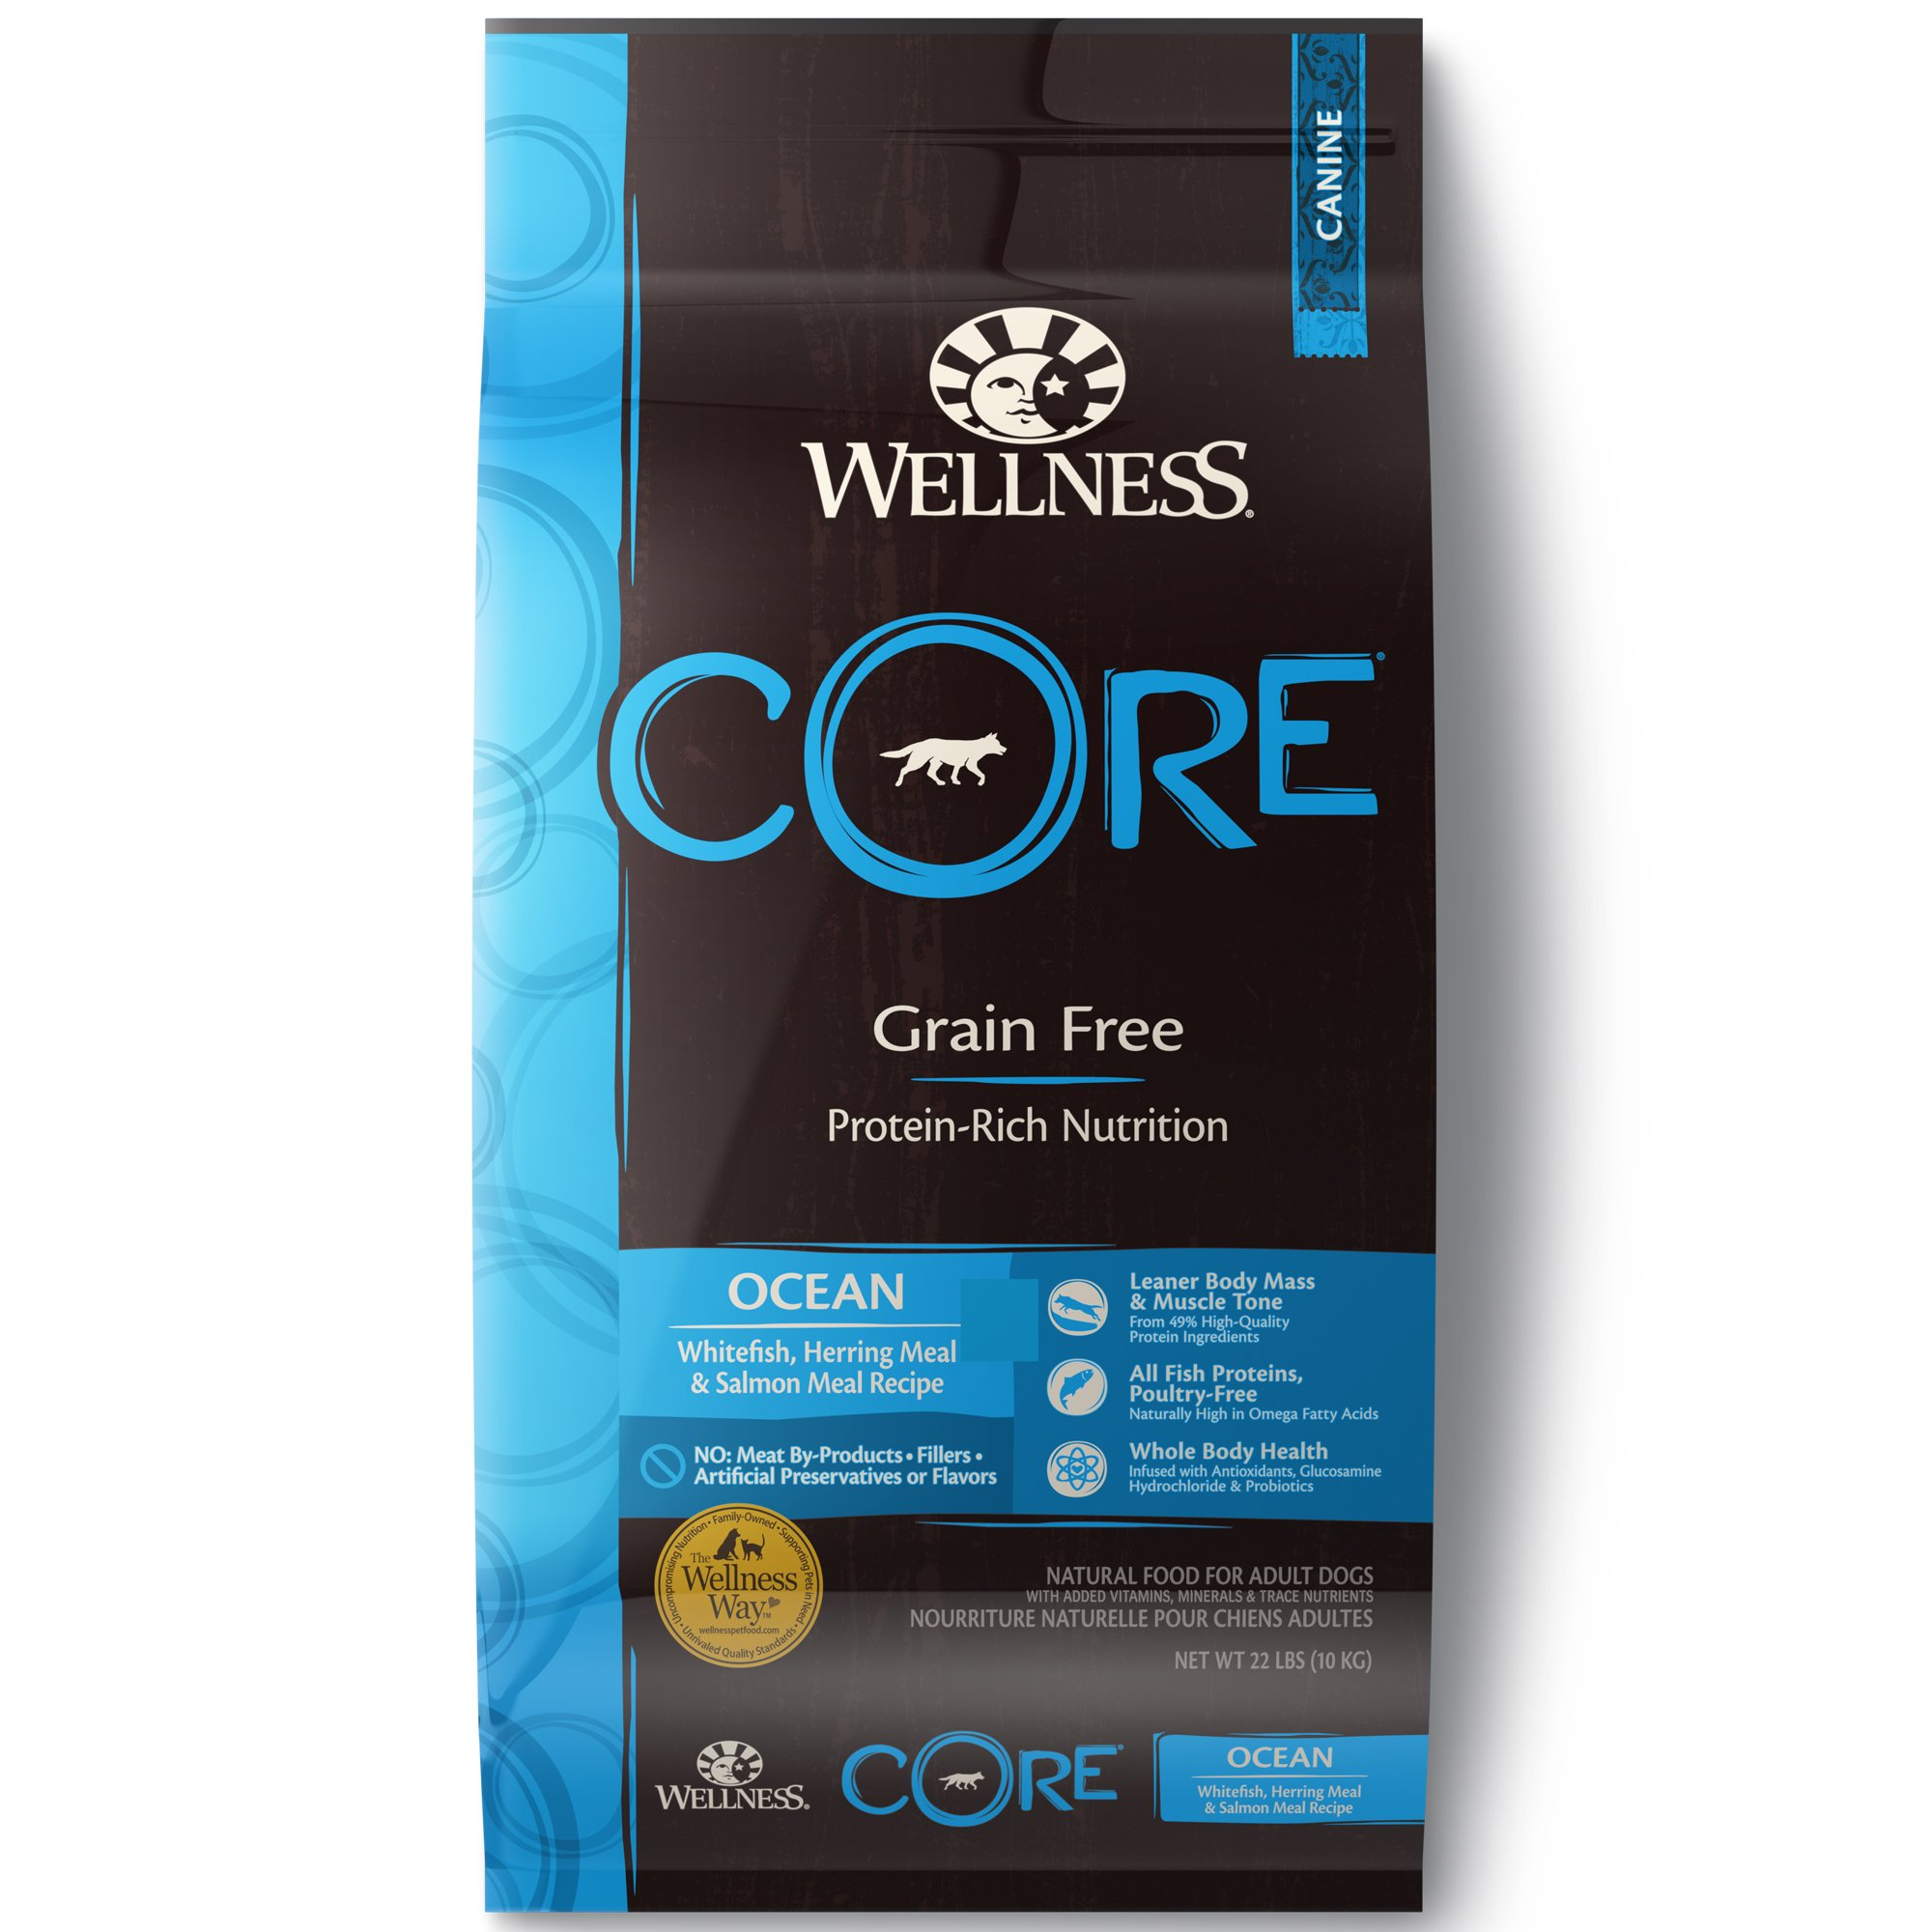 Wellness Core Natural Grain Free Ocean Recipe Dry Dog Food